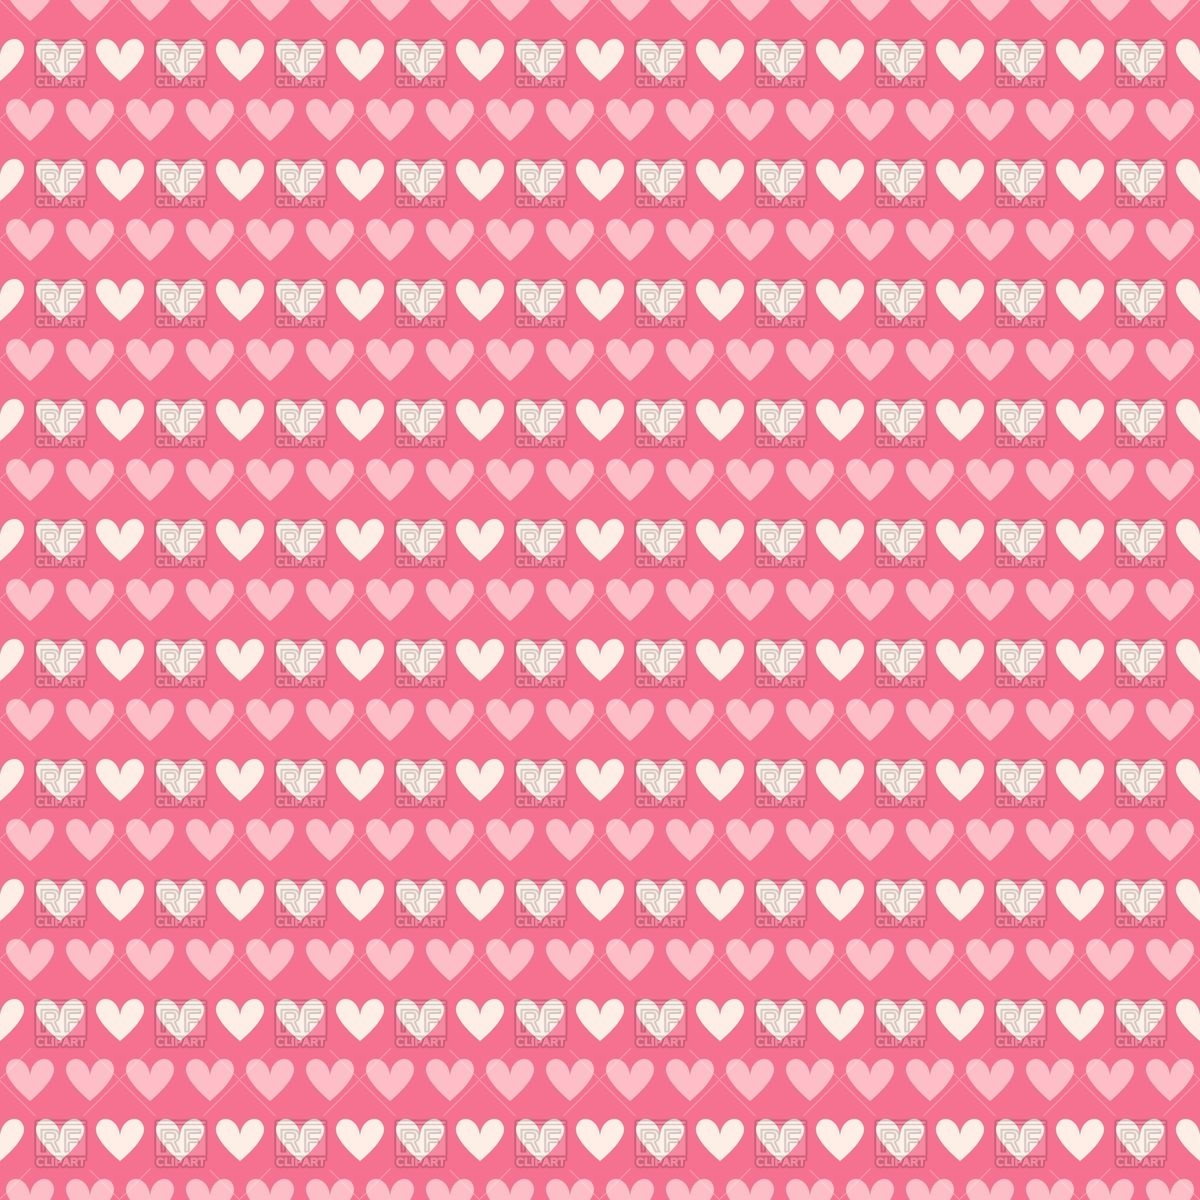 Cute seamless Valentines day background with pink and white 1200x1200